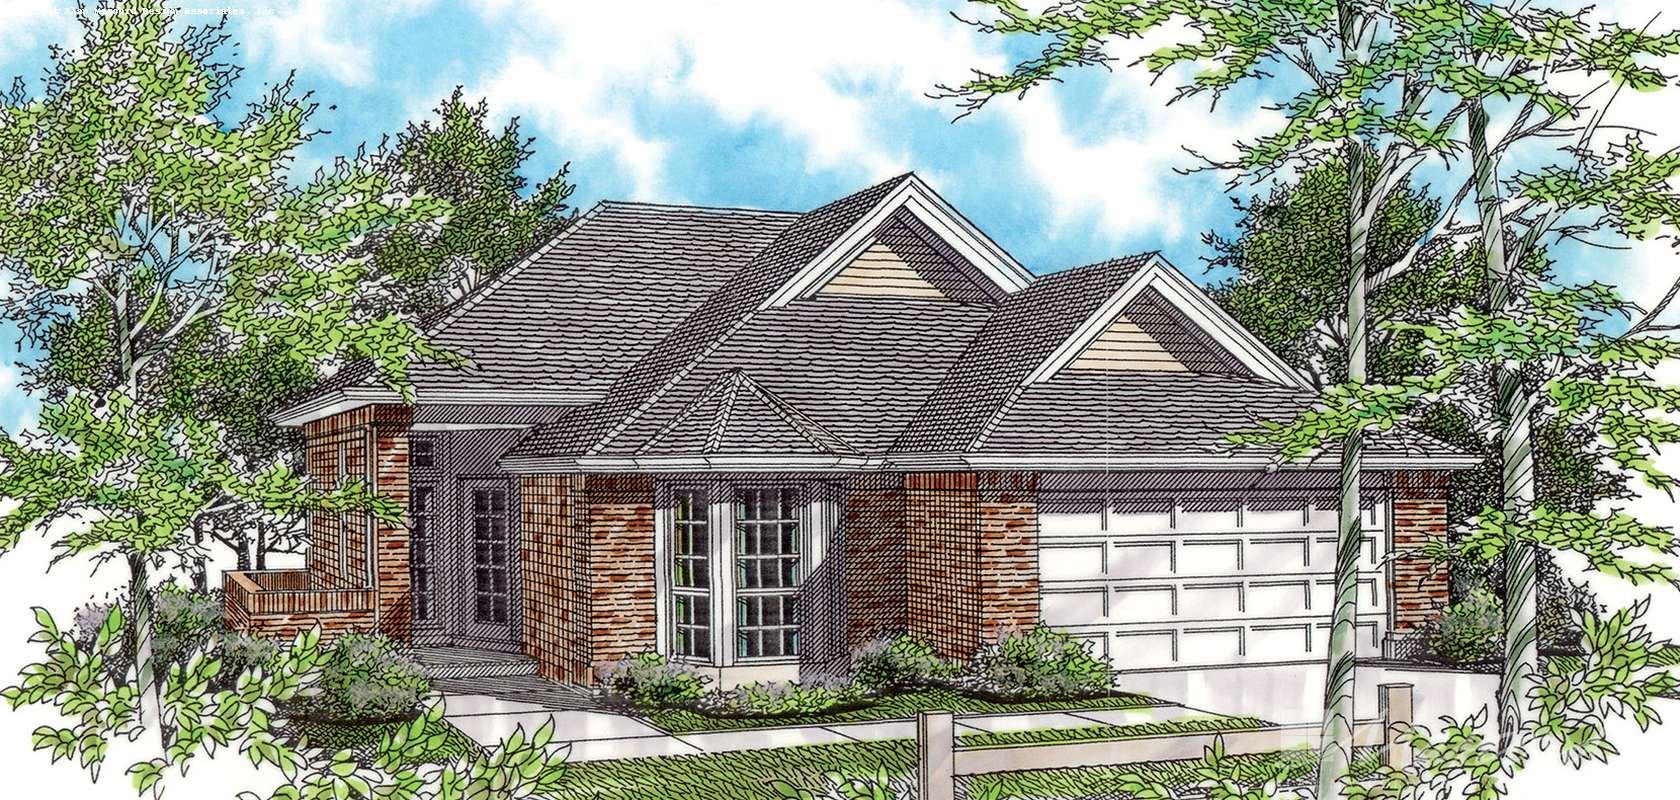 Mascord House Plan 1108A: The Naylor